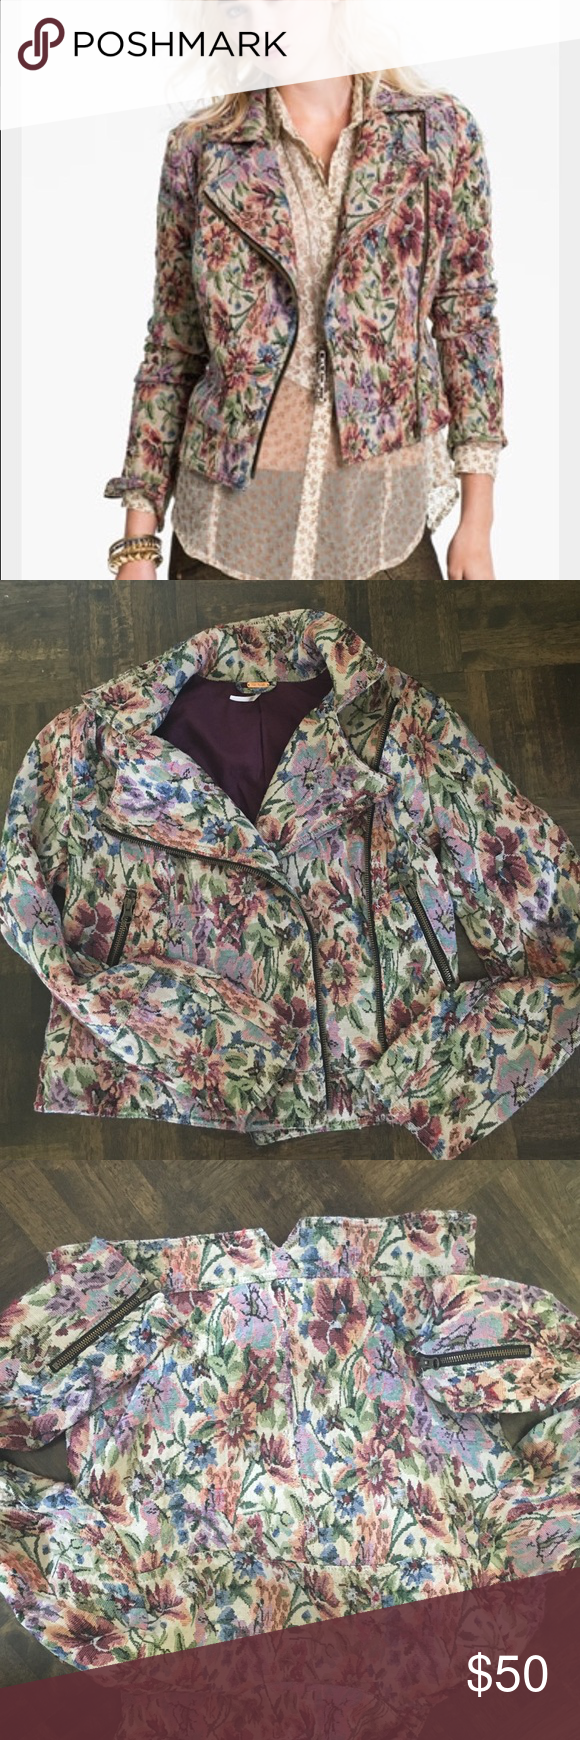 Free people jacket Brand new. Without tags. Only tried on. Size 8. True to size. Free People Jackets & Coats